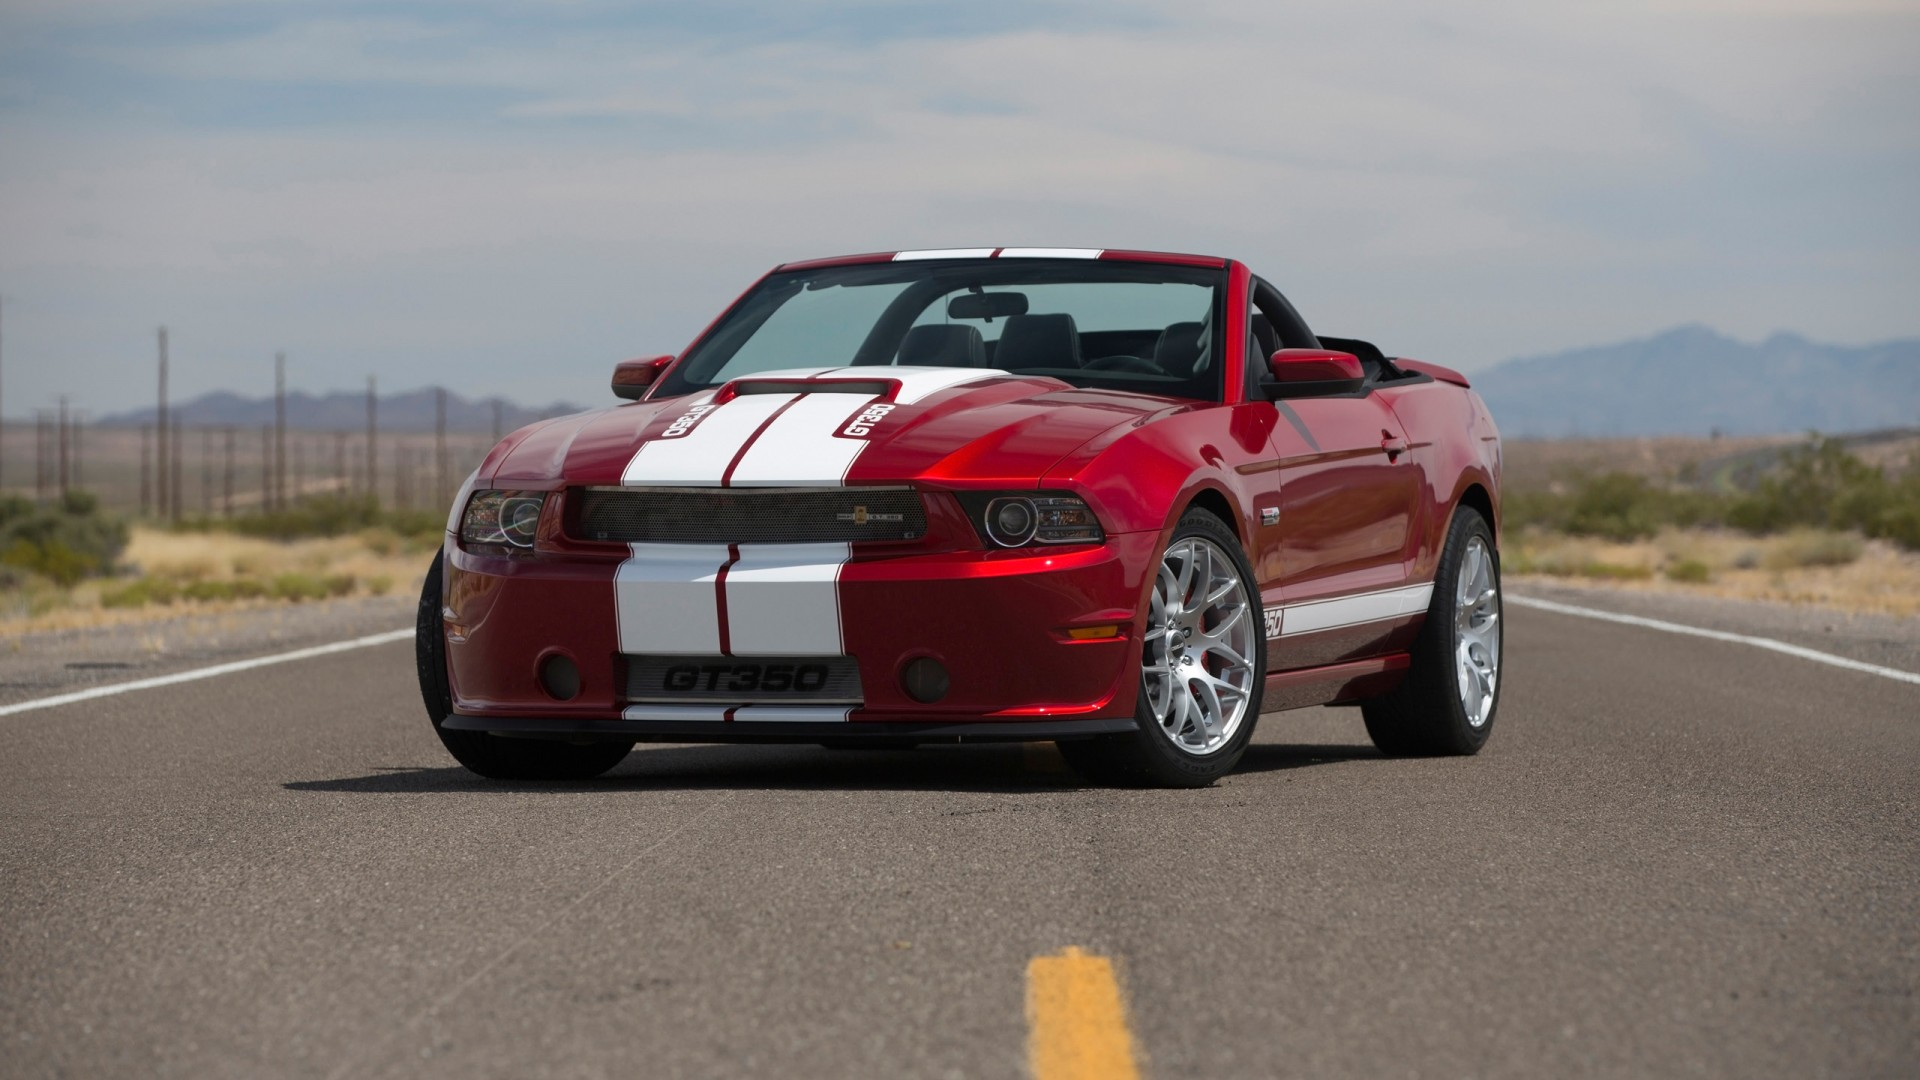 Mustang Wallpaper Iphone X 2013 Ford Mustang Shelby Gt350 Wallpaper Hd Car